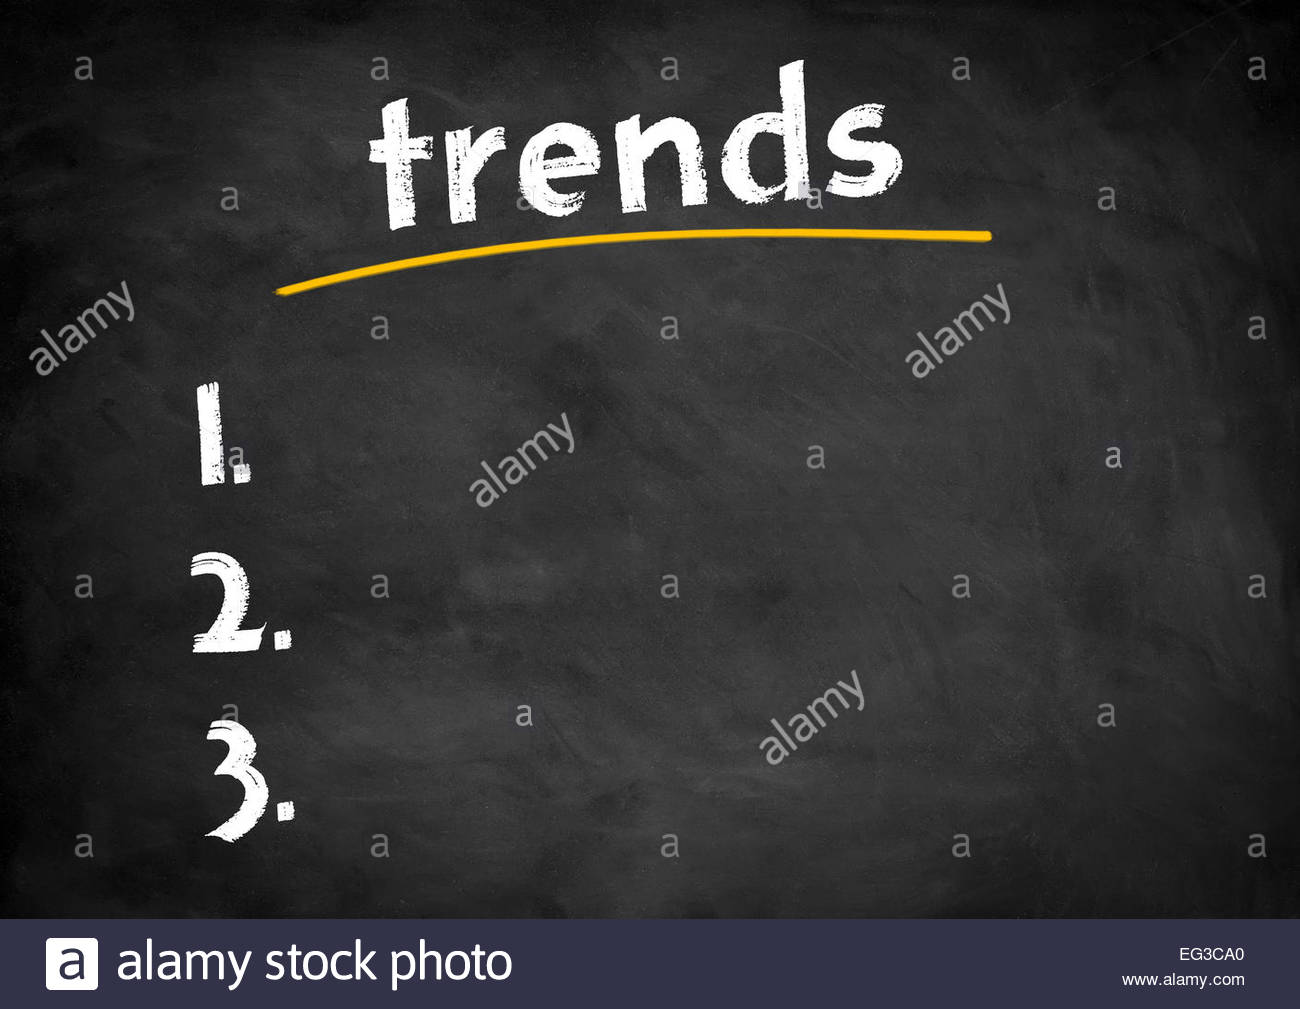 trend chalkboard concept - Stock Image